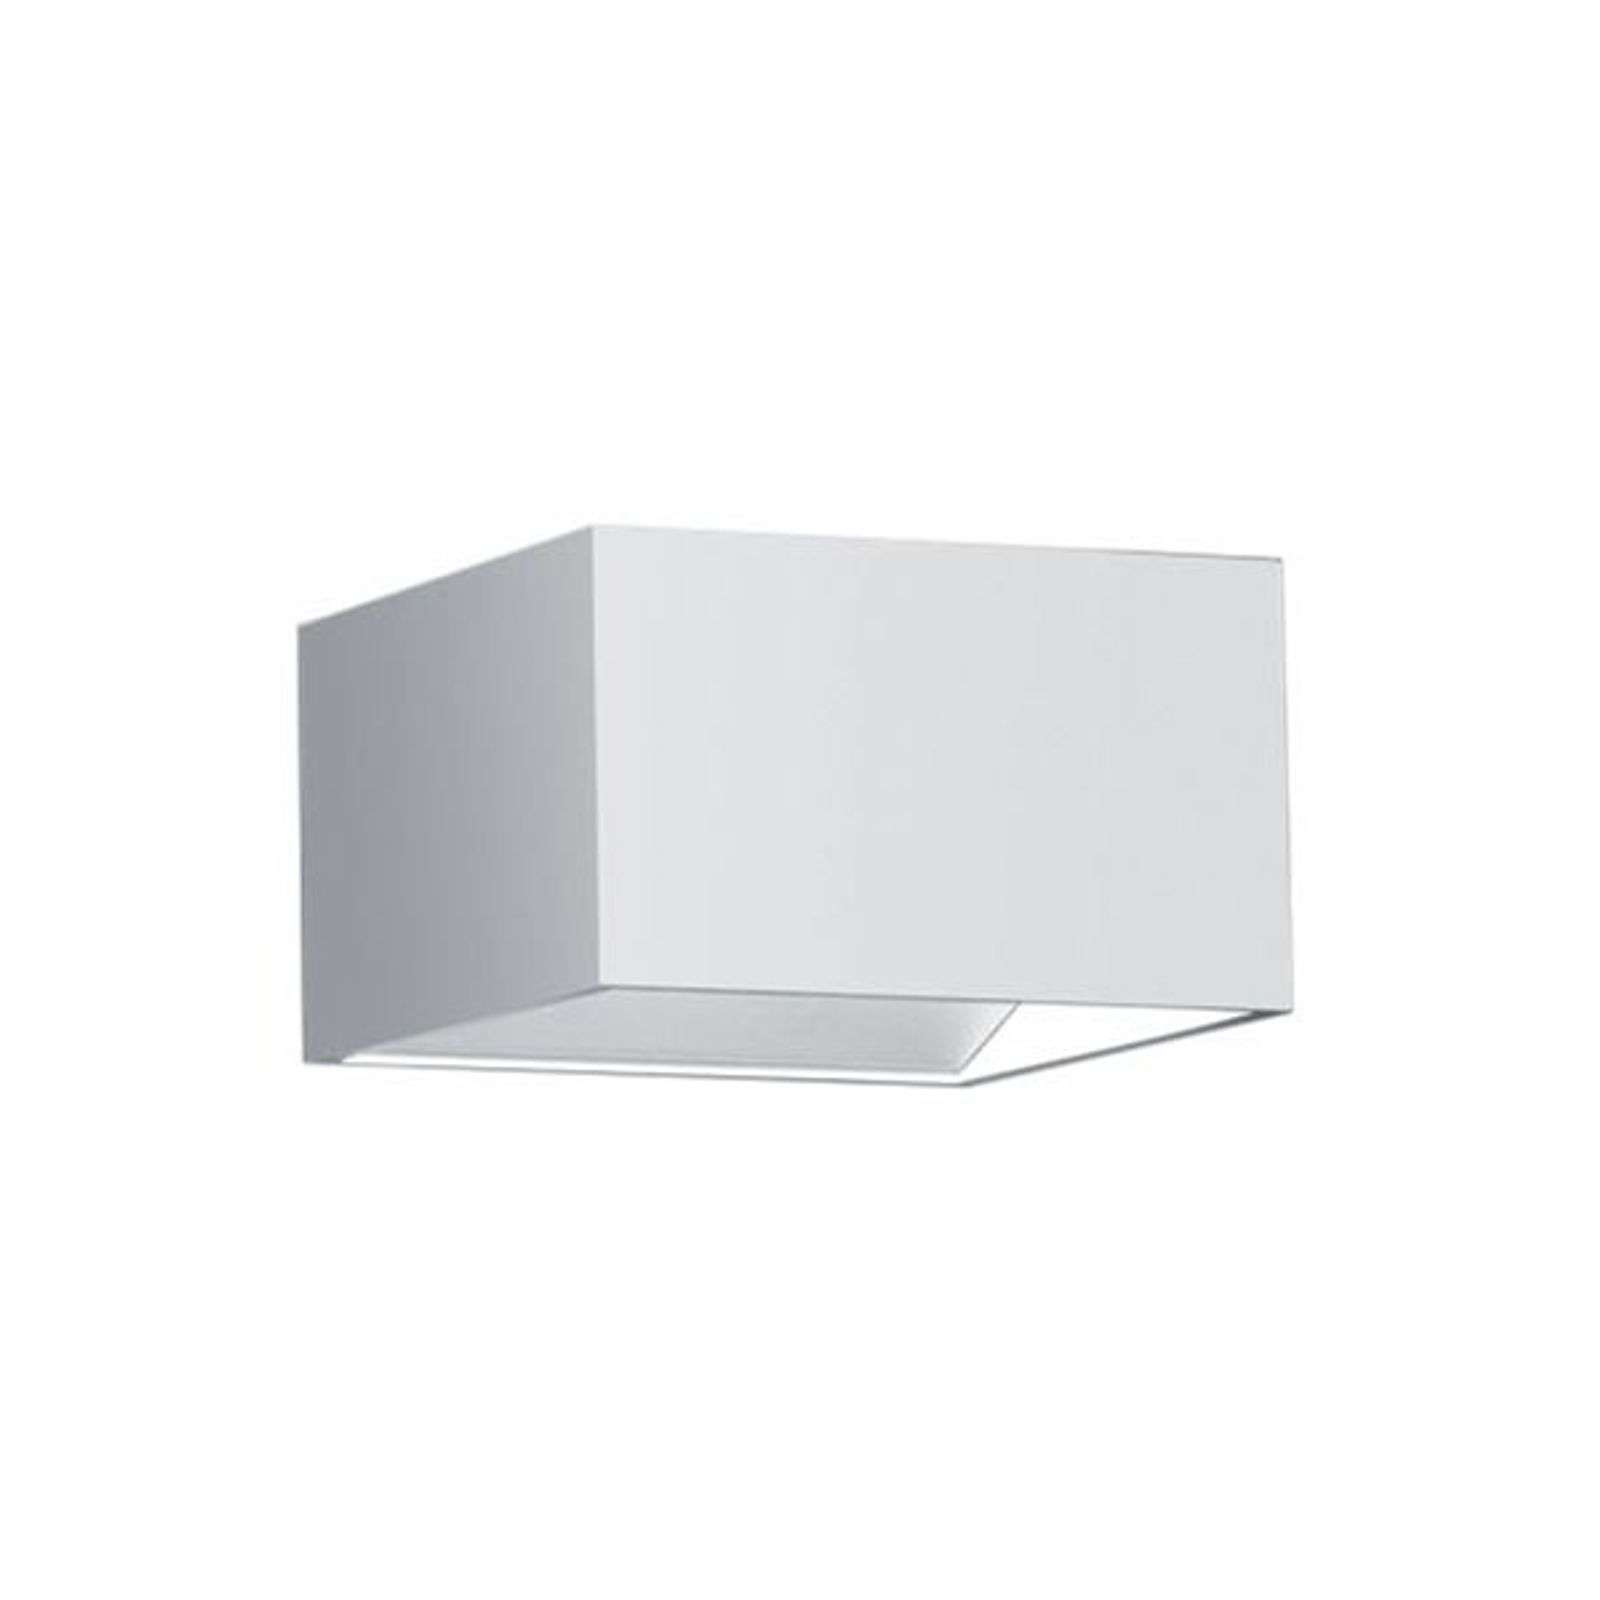 Aplique LED Cube luz directa e indirecta, blanco